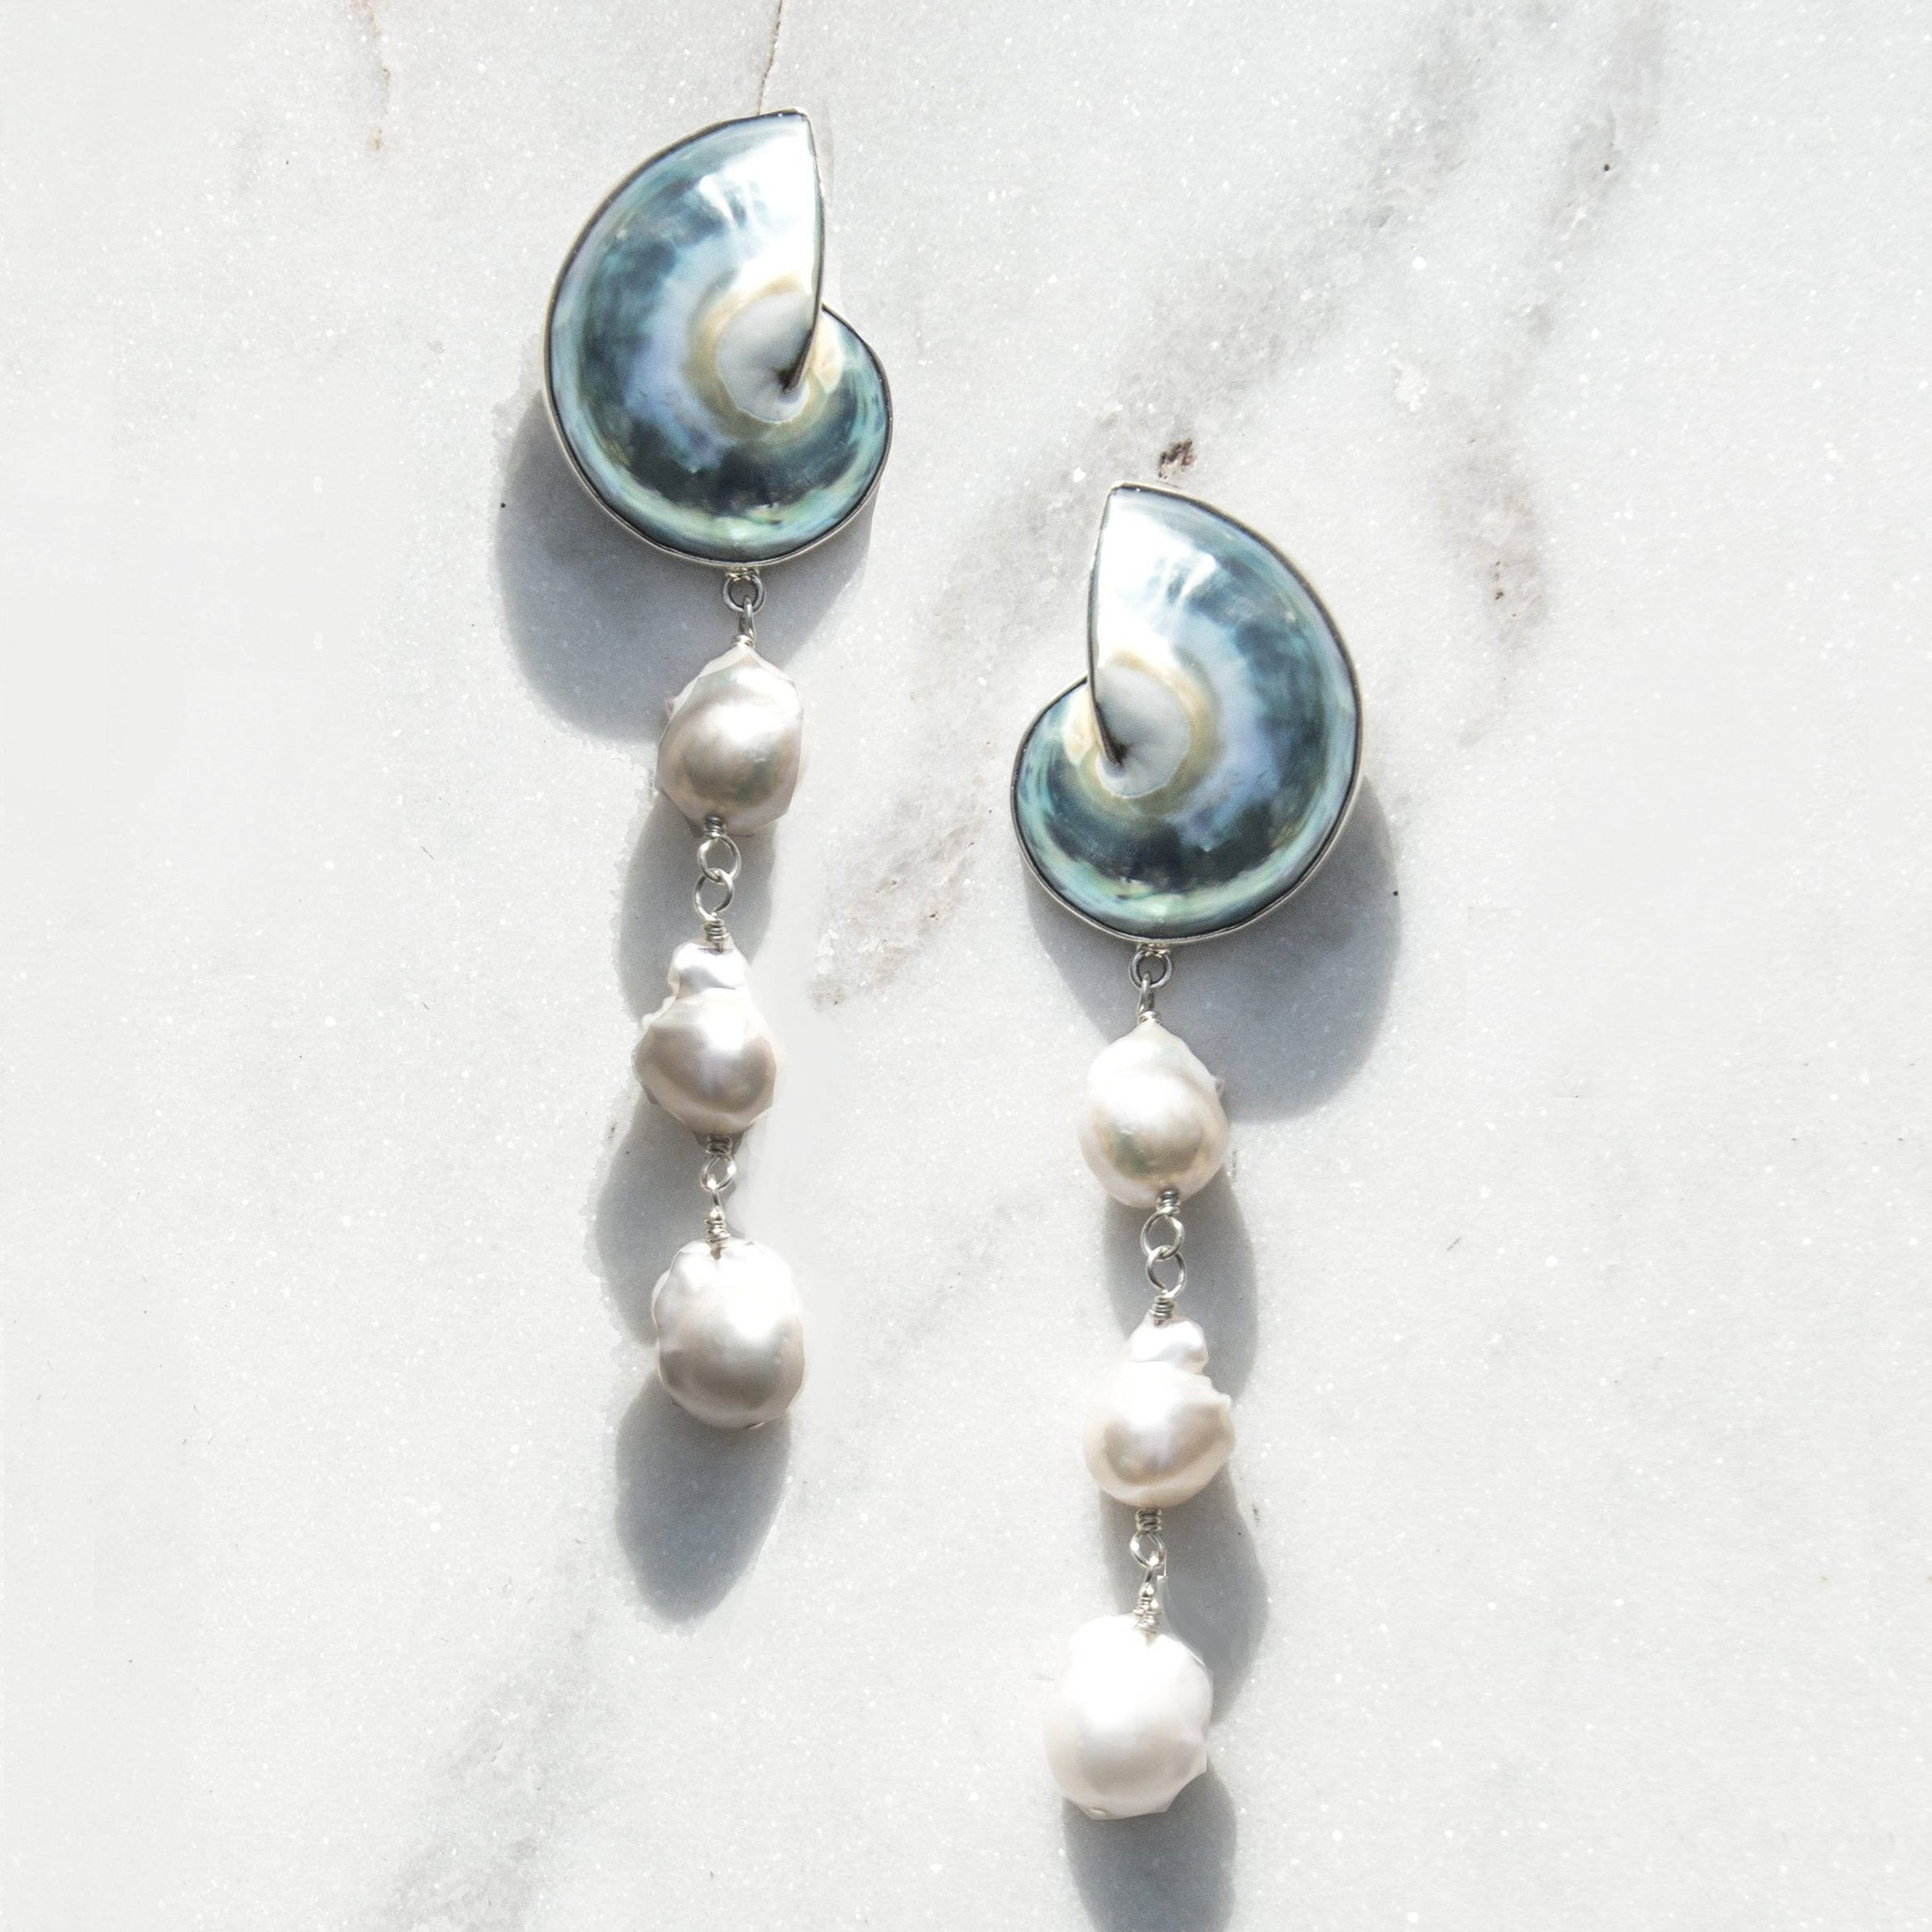 Nautilus Shell Earrings with Baroque Pearls